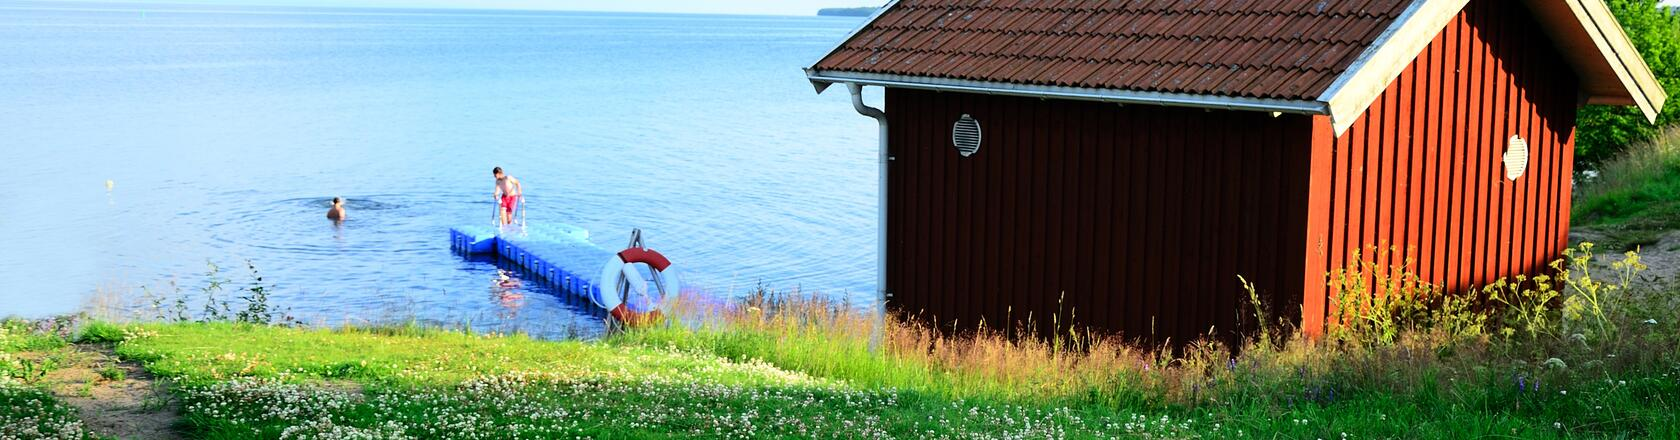 Book a holiday home in Finland - it is easy and safe | DanCenter